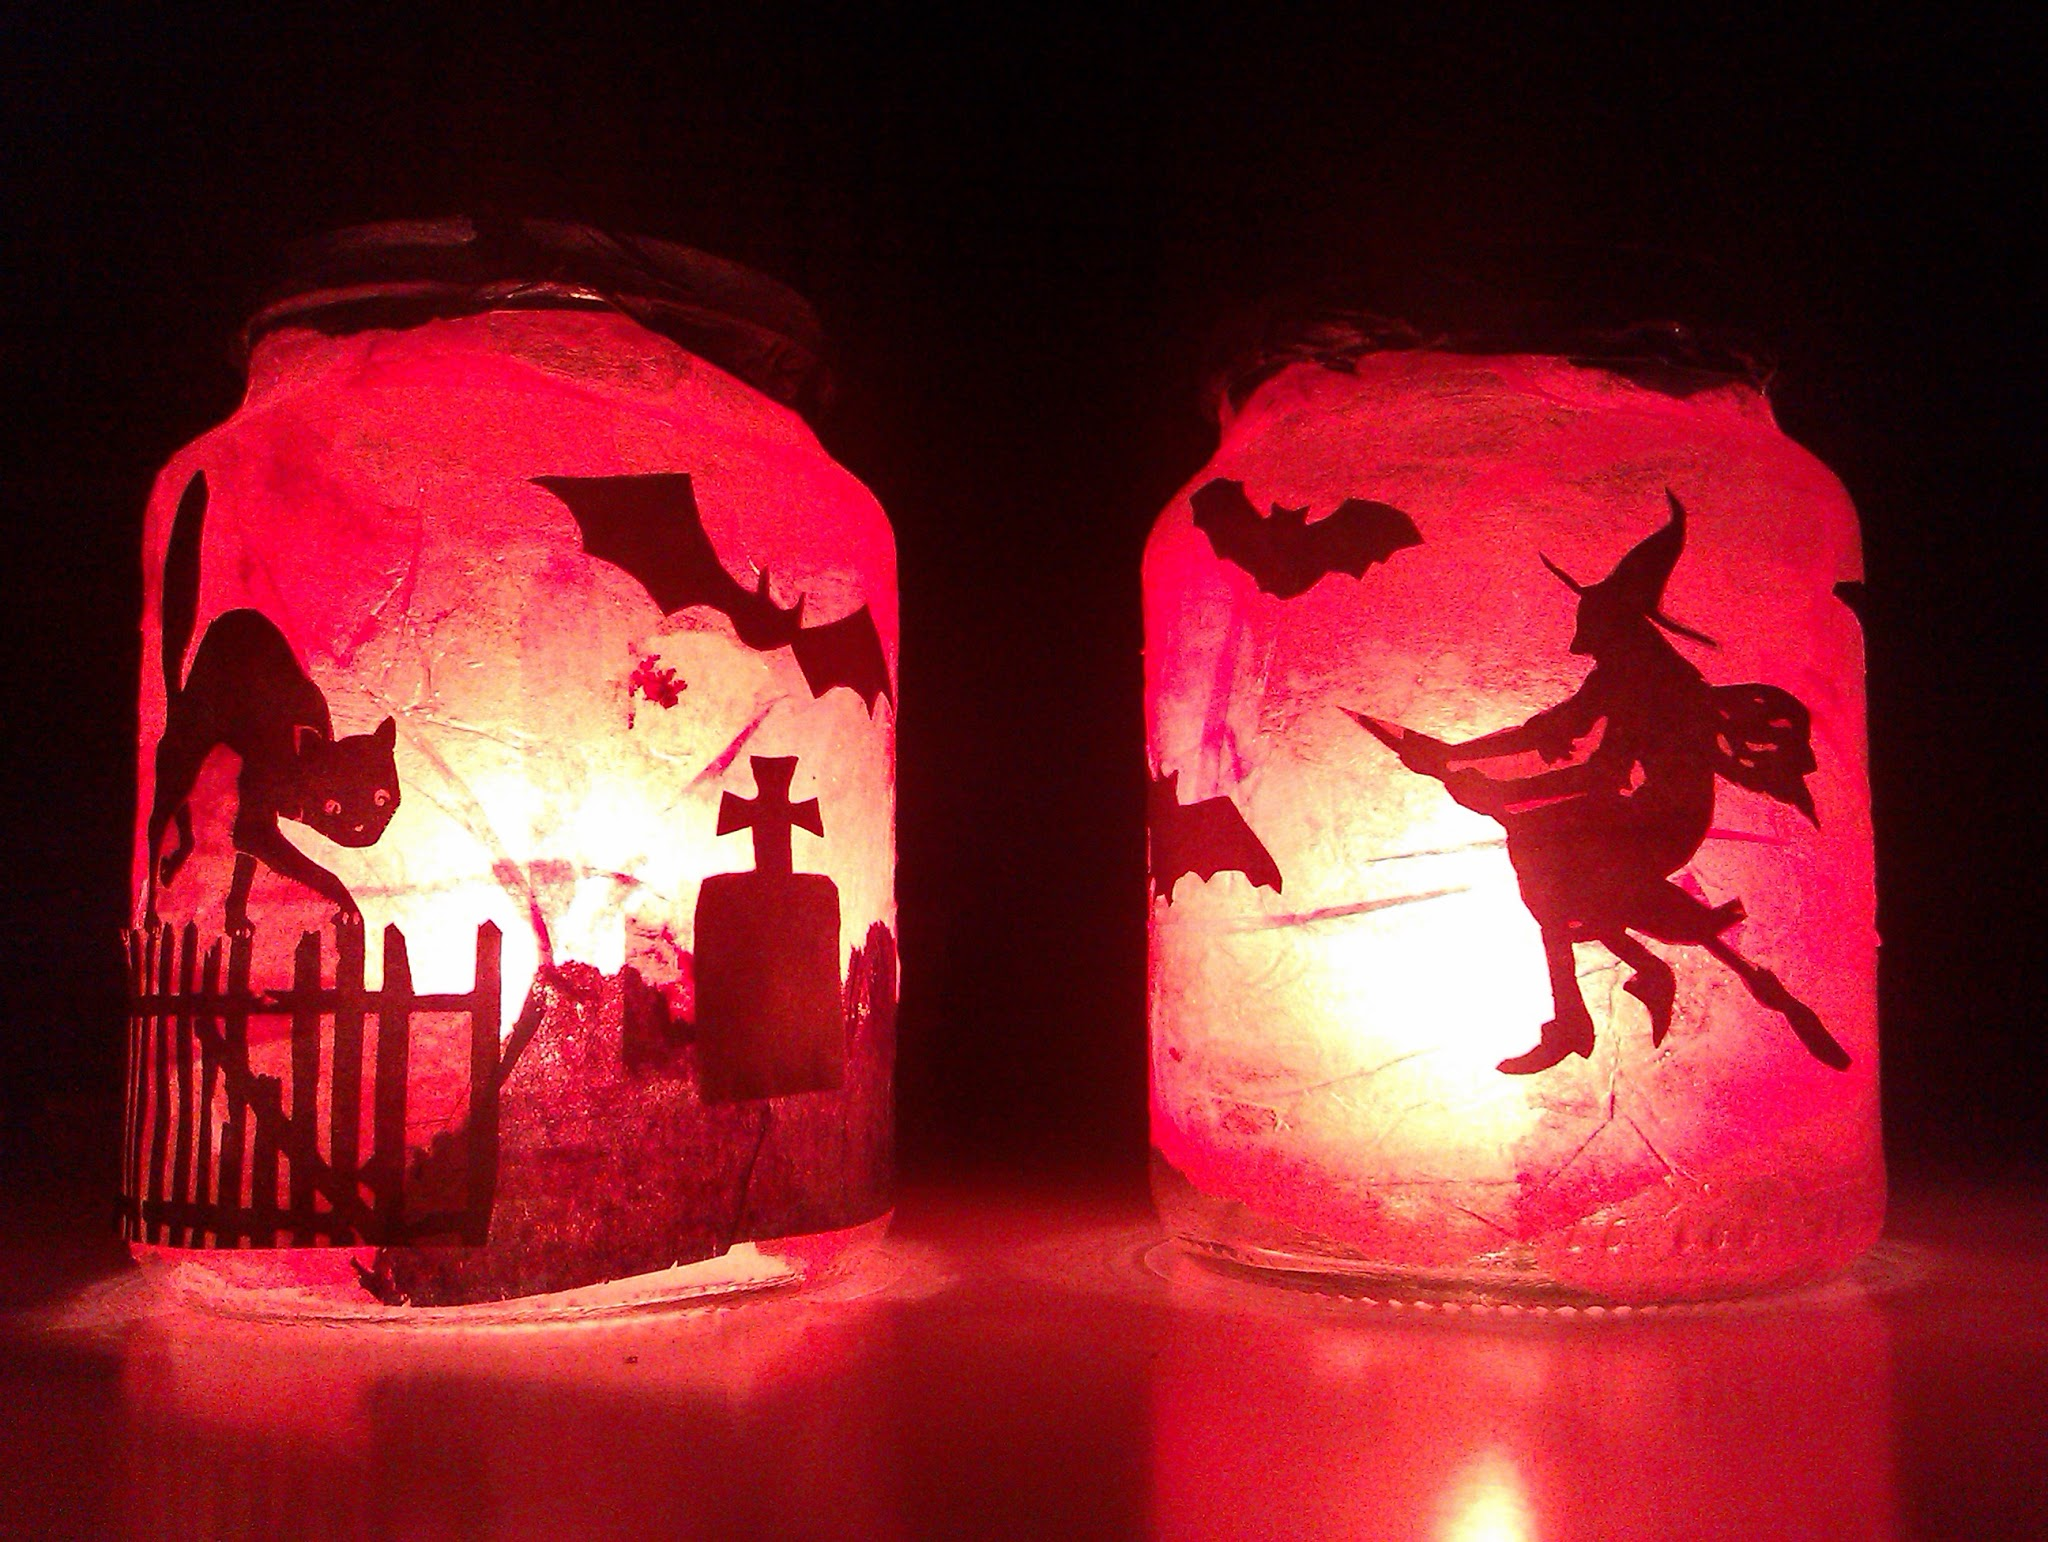 spooky halloween lanterns - How To Make Halloween Lanterns